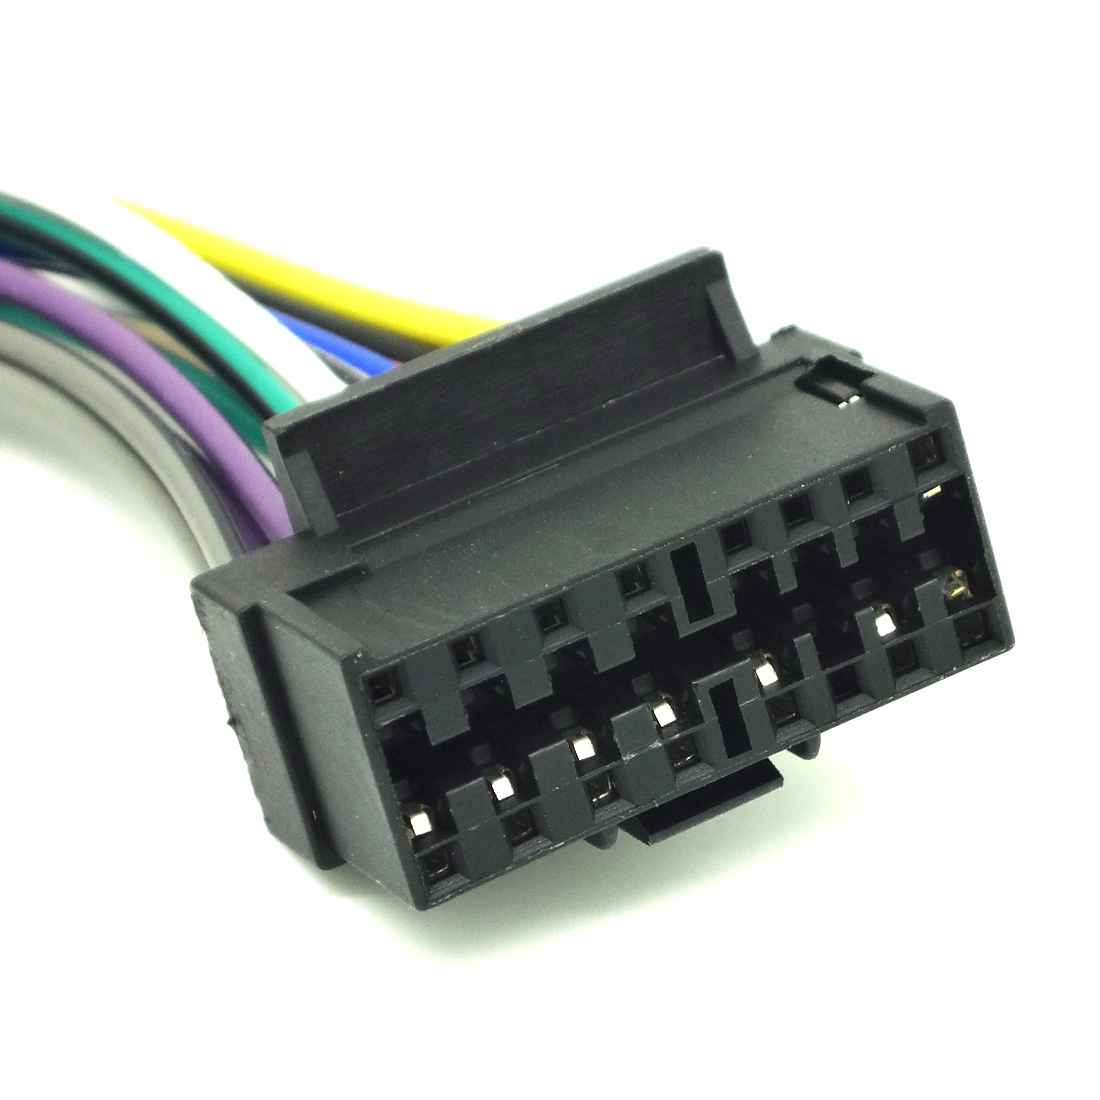 hight resolution of jvc kd g310 wiring diagram wiring diagram 610 radio wire harness for jvc kd